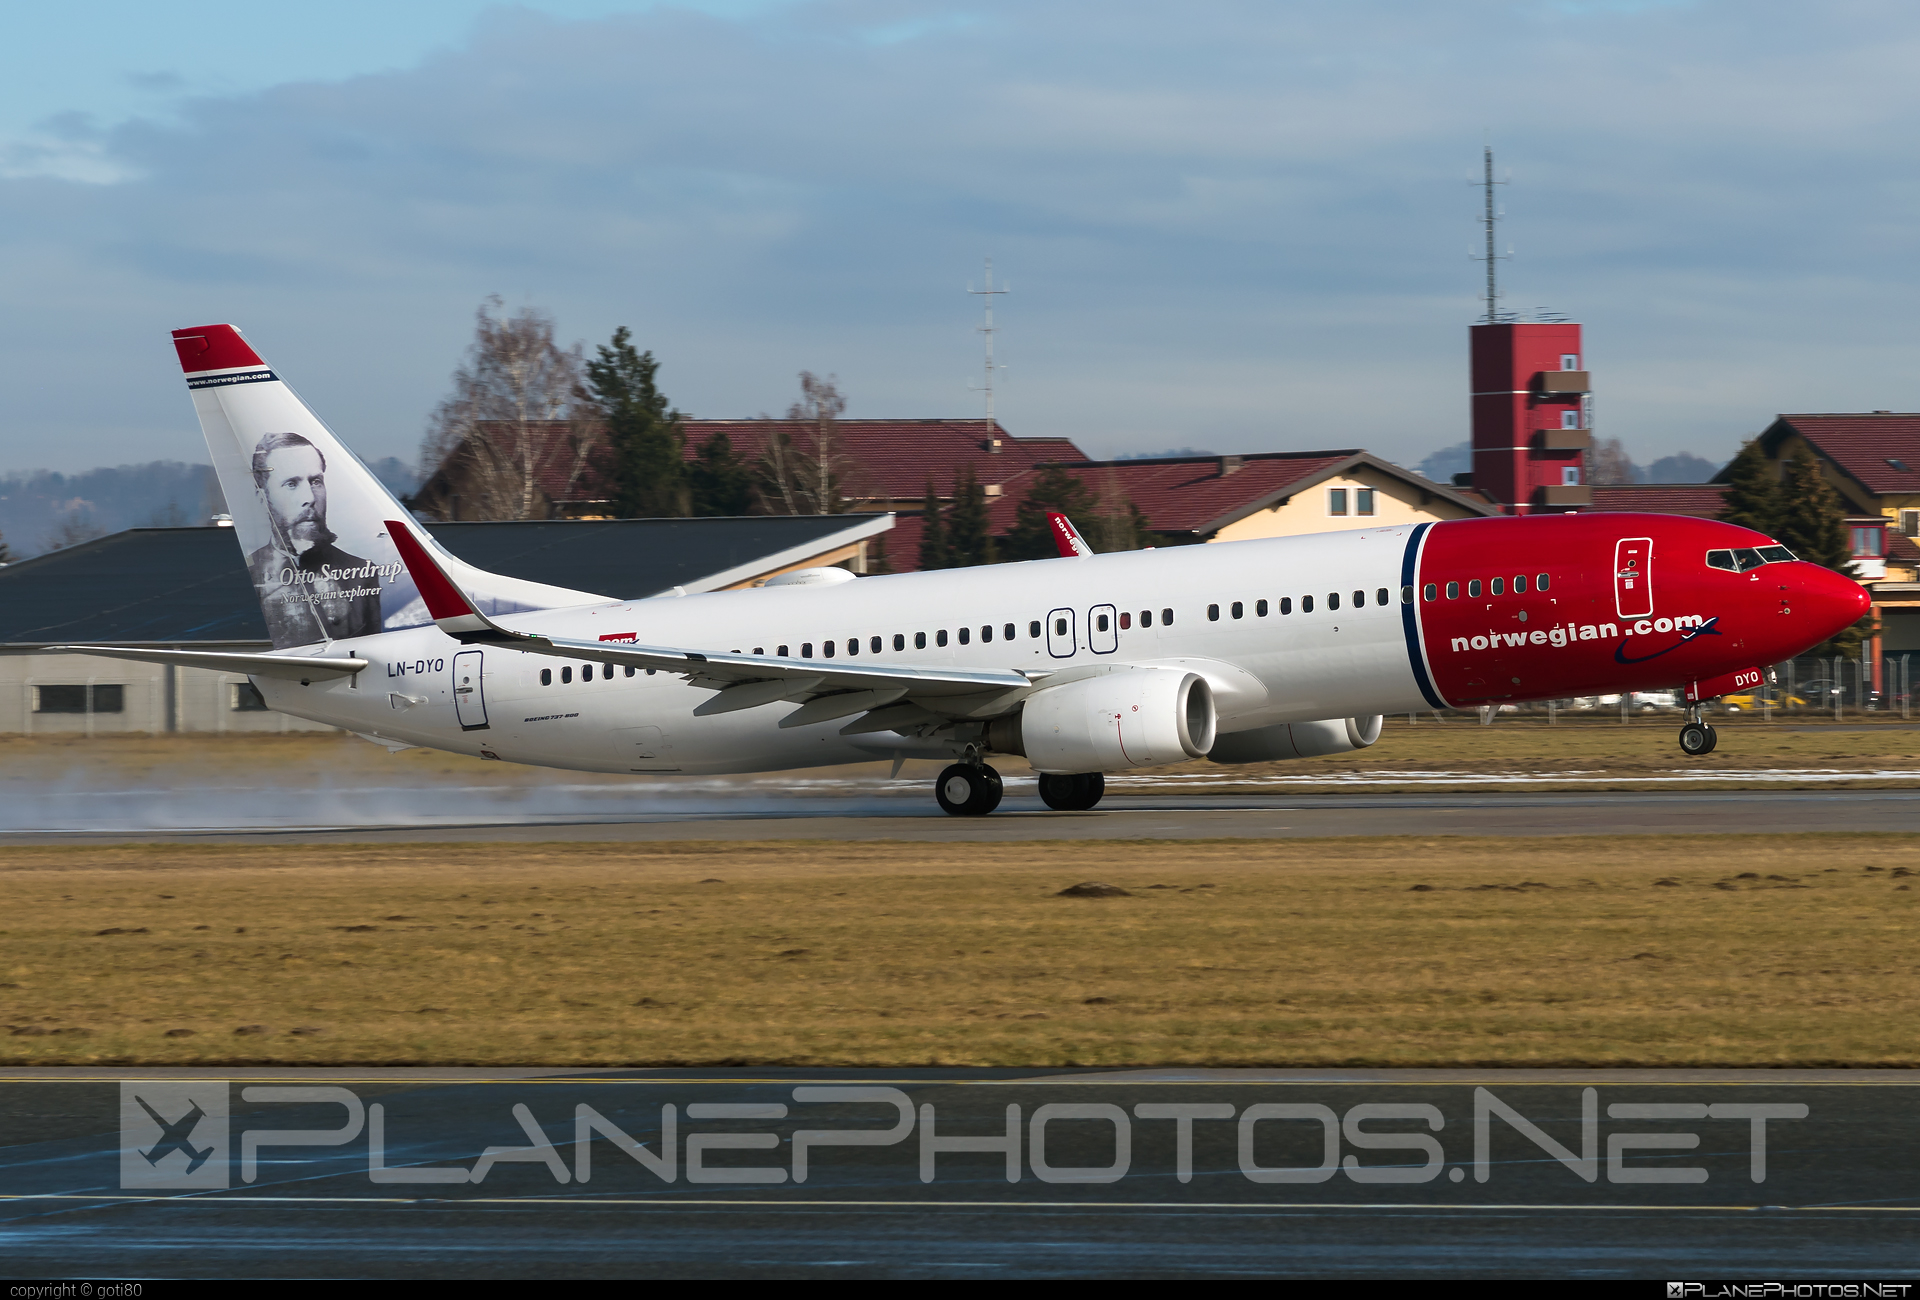 Boeing 737-800 - LN-DYO operated by Norwegian Air Shuttle #b737 #b737nextgen #b737ng #boeing #boeing737 #norwegian #norwegianair #norwegianairshuttle